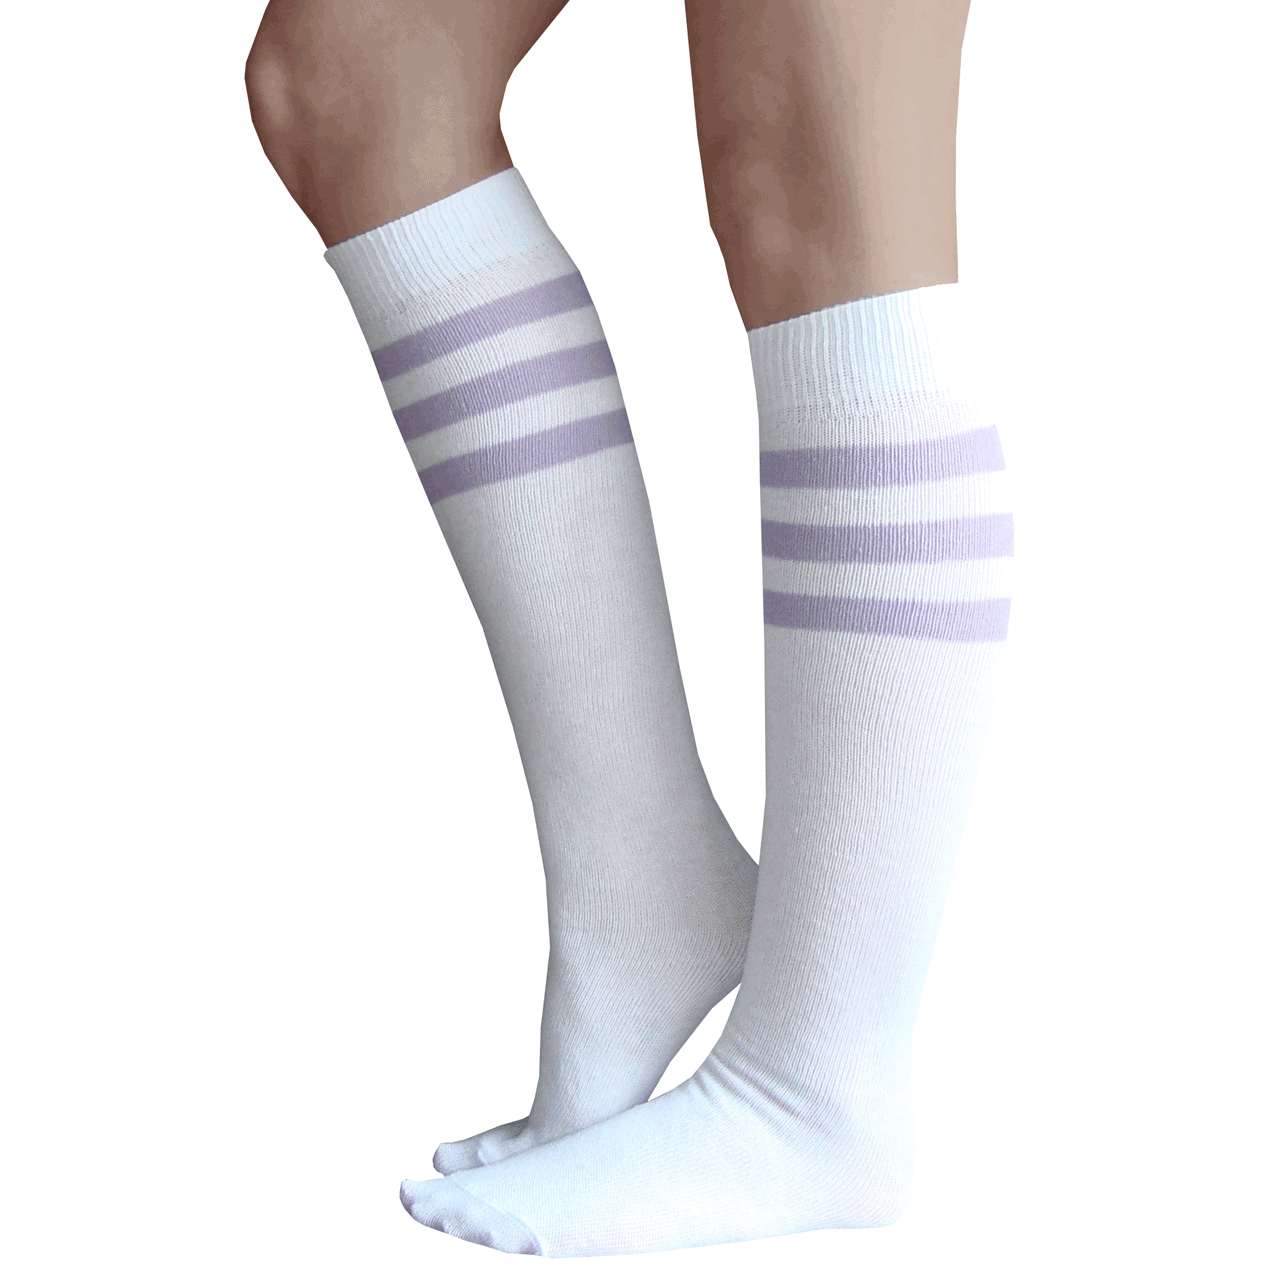 9addfef0ee0 See 1 more picture. Lilac Striped Tube Socks. Light Purple Striped Knee  Highs